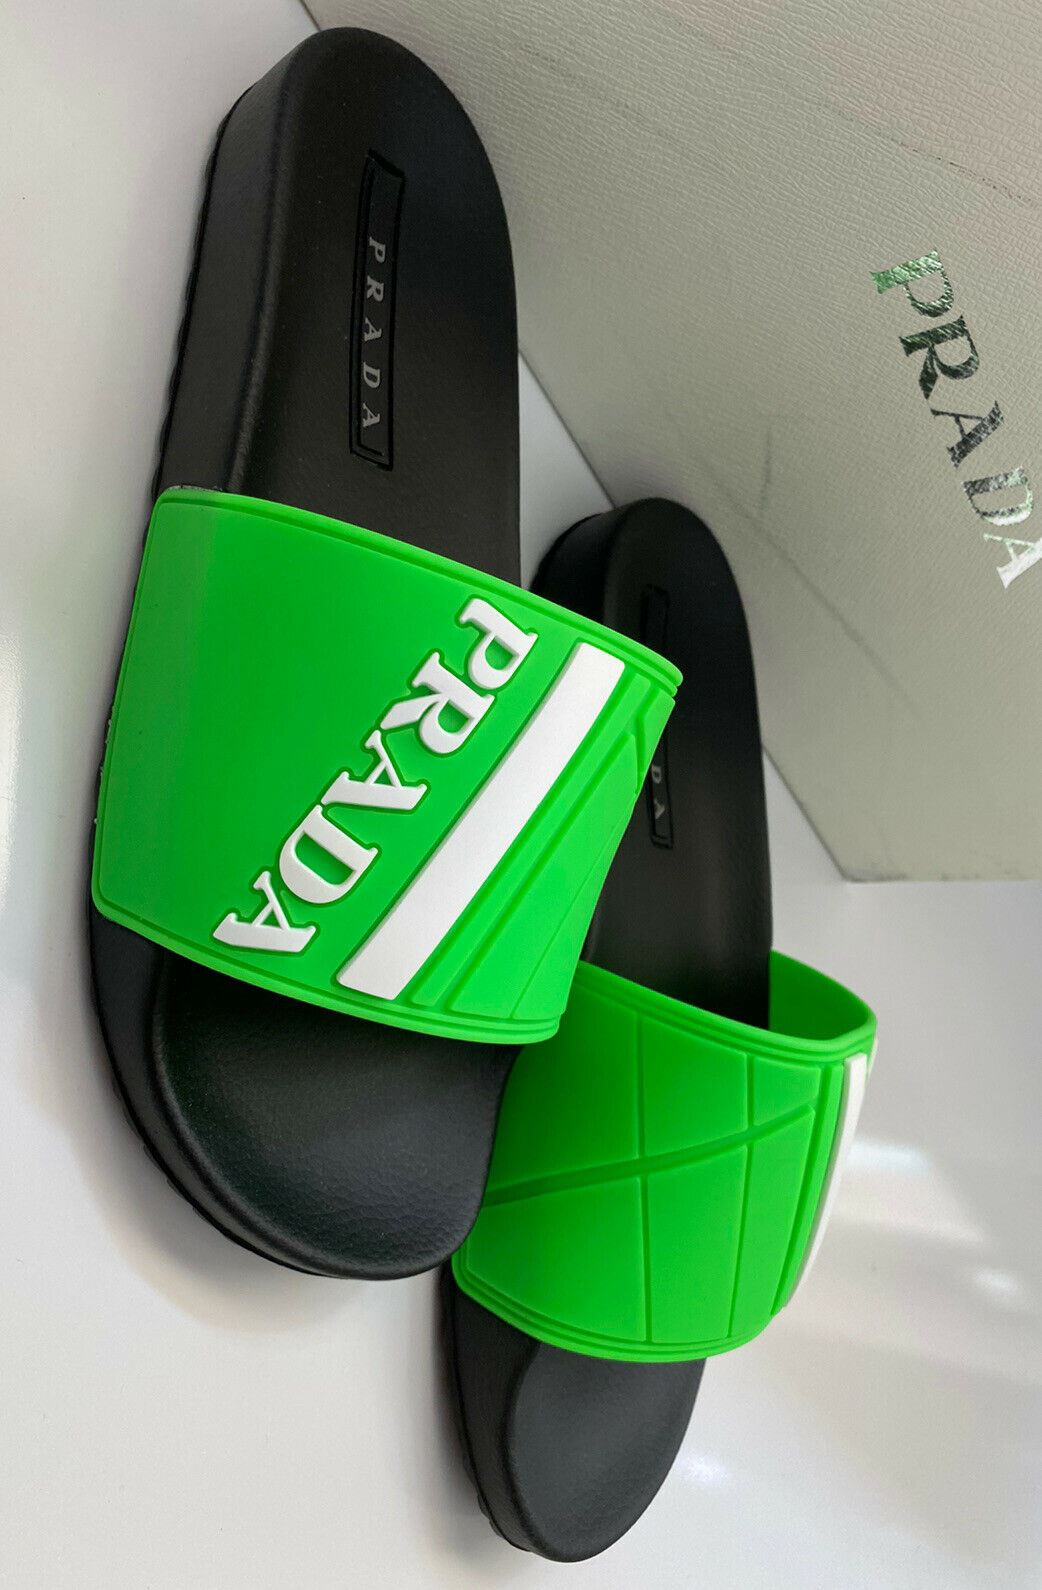 NIB $480 Prada Mens Rubber Sandals Neon Green 10 US 4X3204